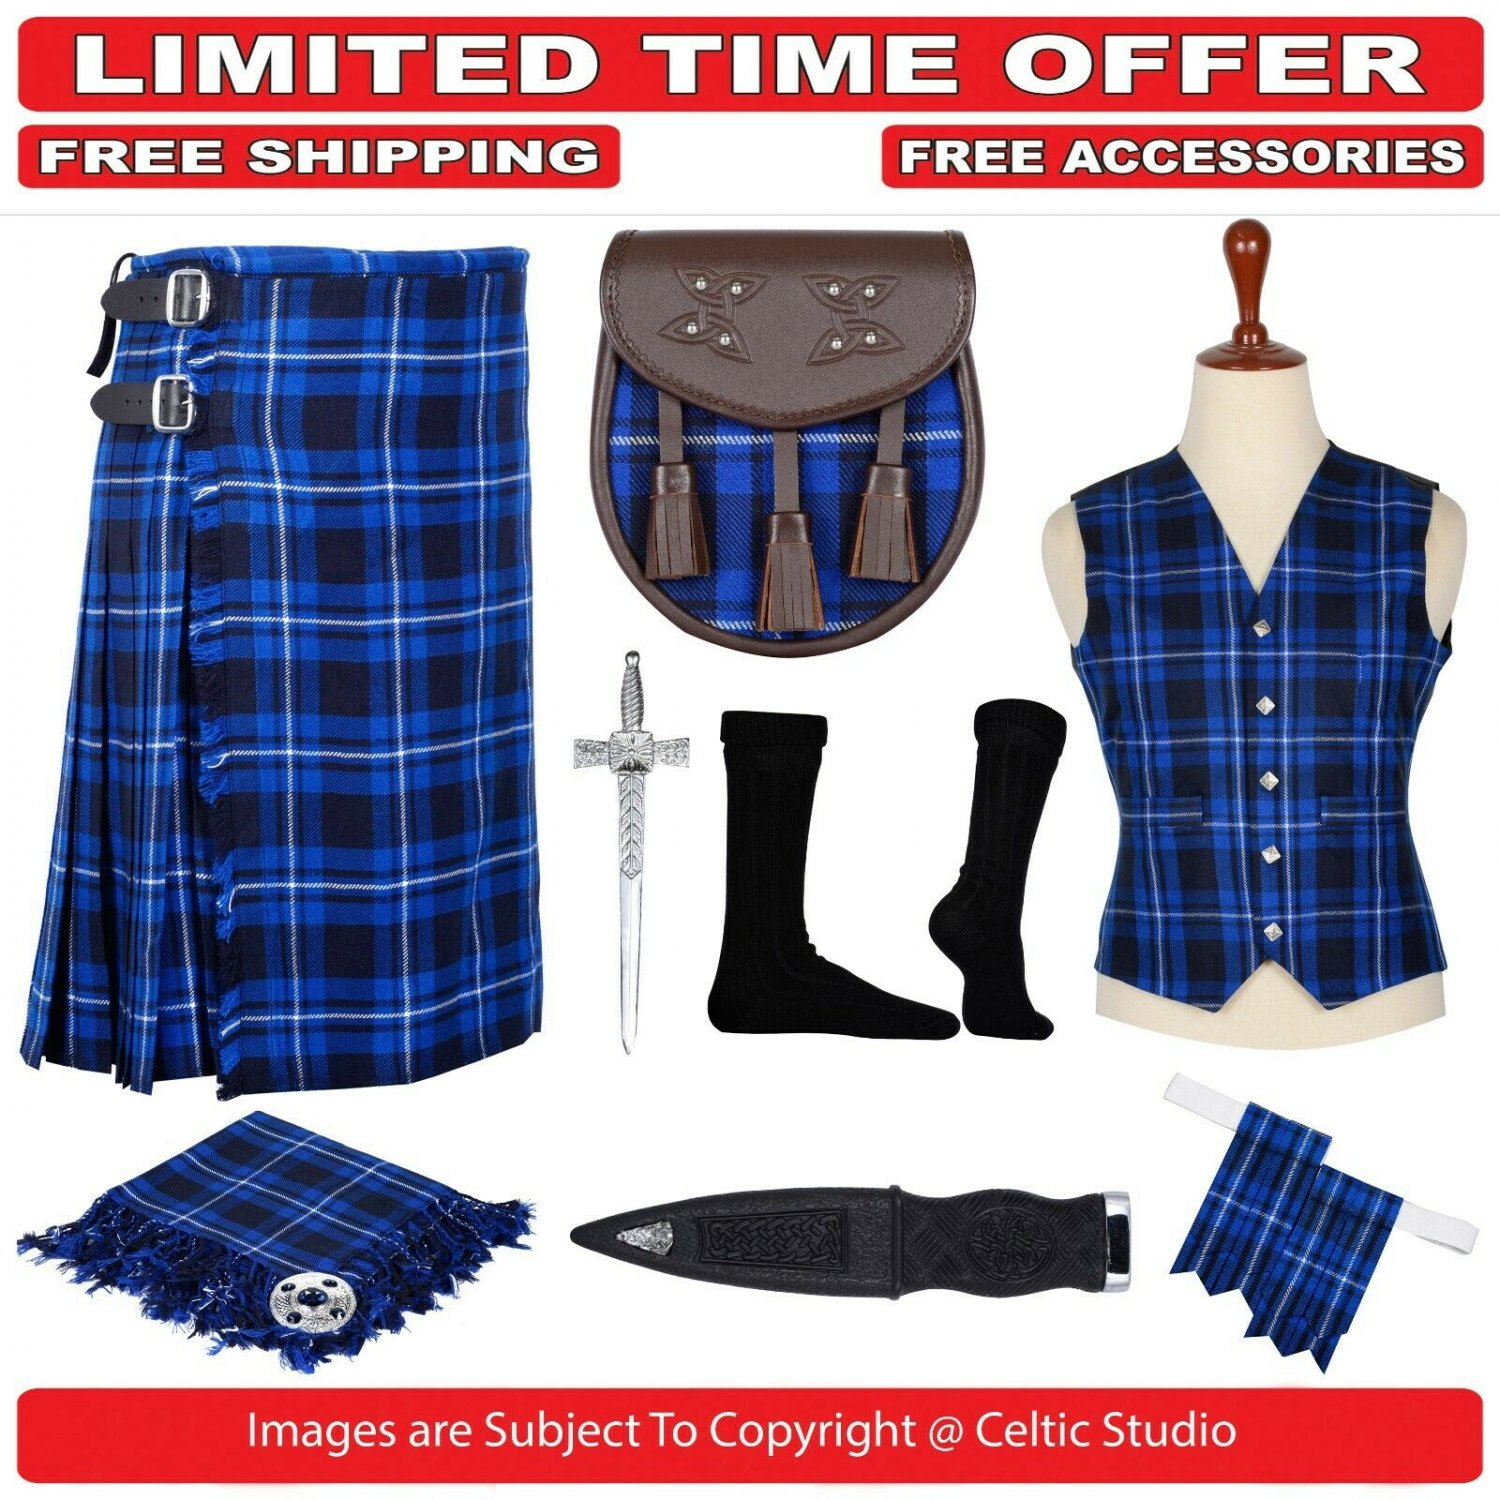 54 size Ramsey Blue Scottish Traditional Tartan Kilt With Free Shipping and 9 Accessories